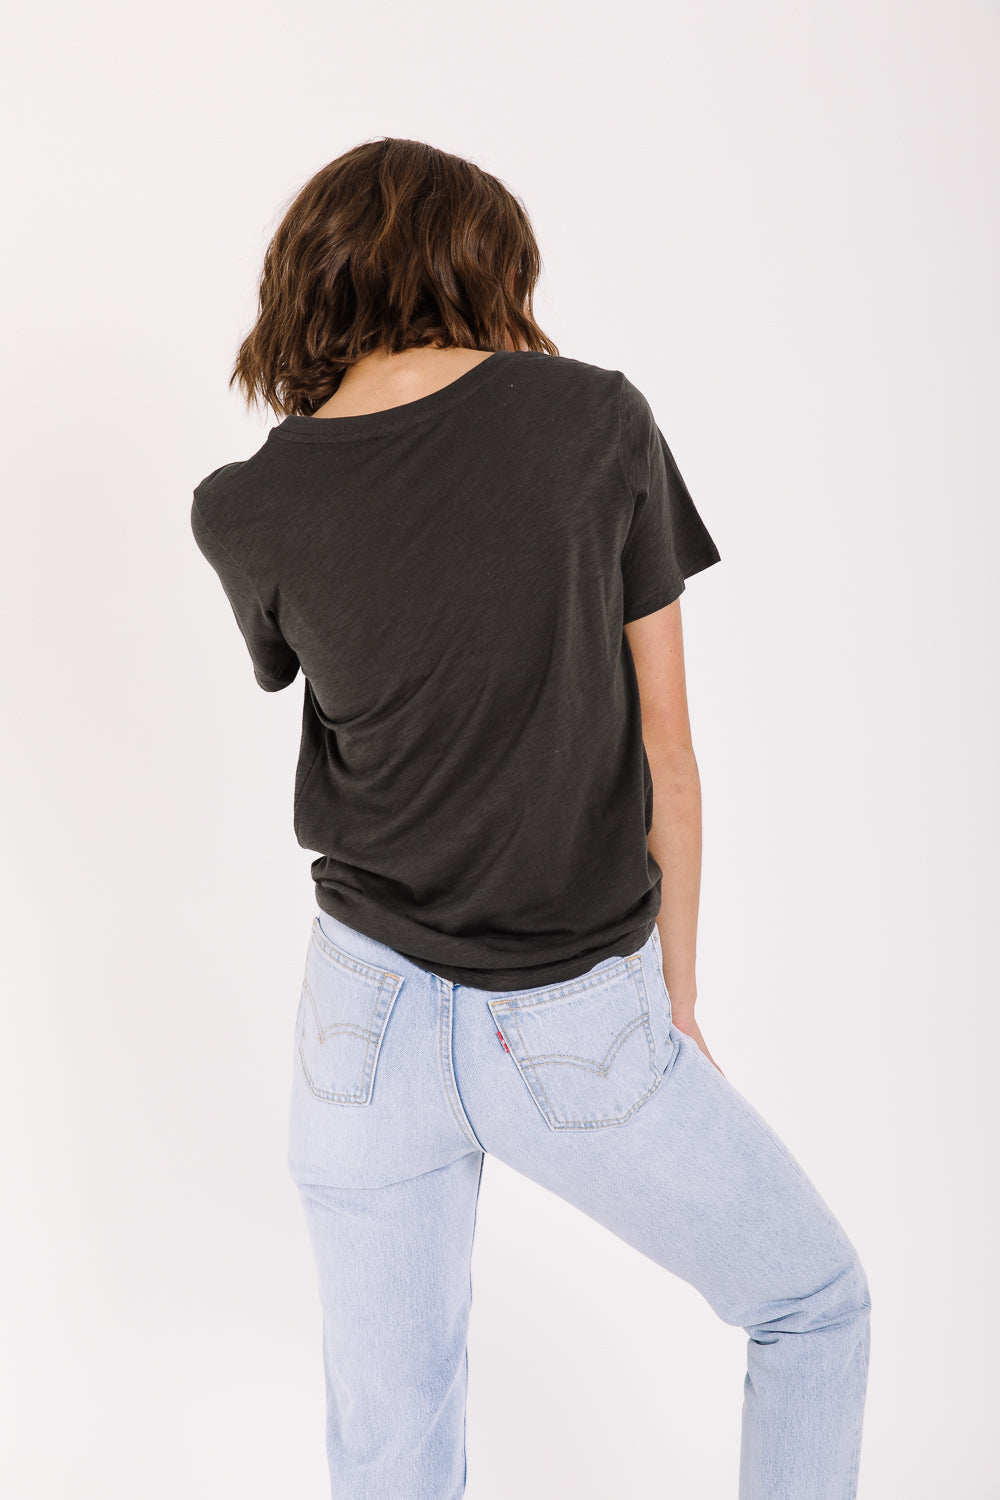 The Take It Easy Graphic Tee in Charcoal